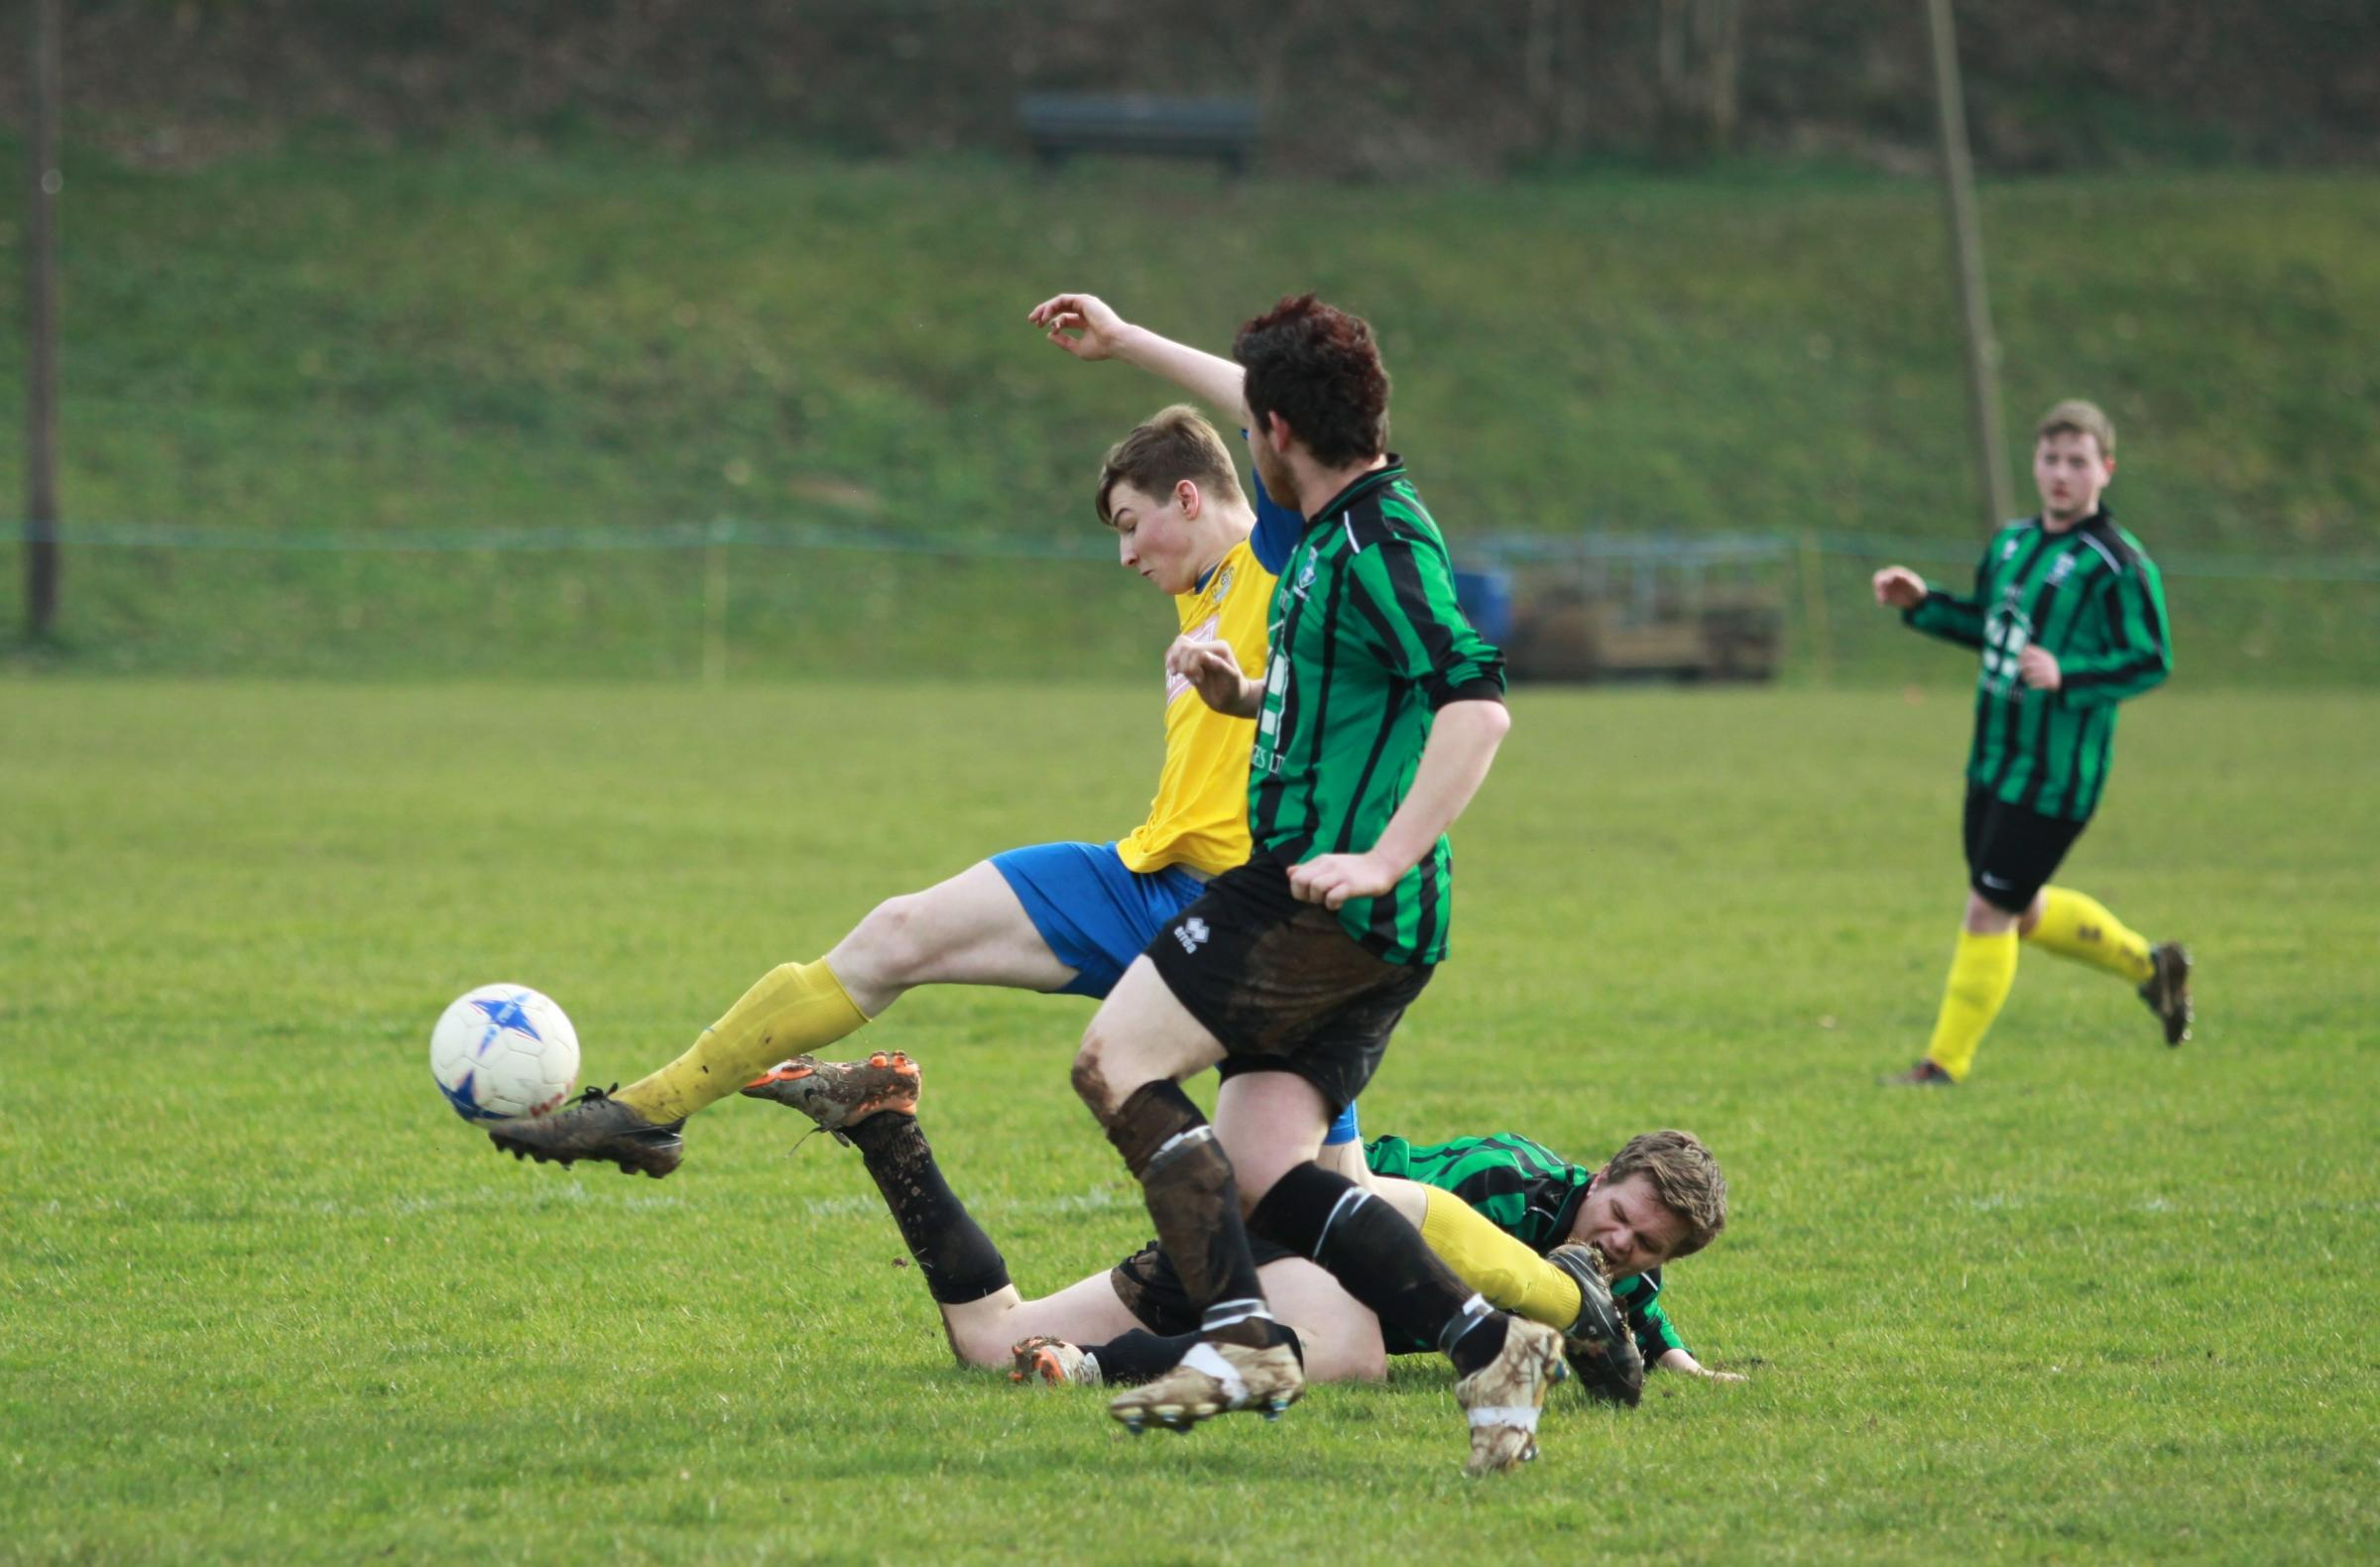 Action from Tenbury United's game.